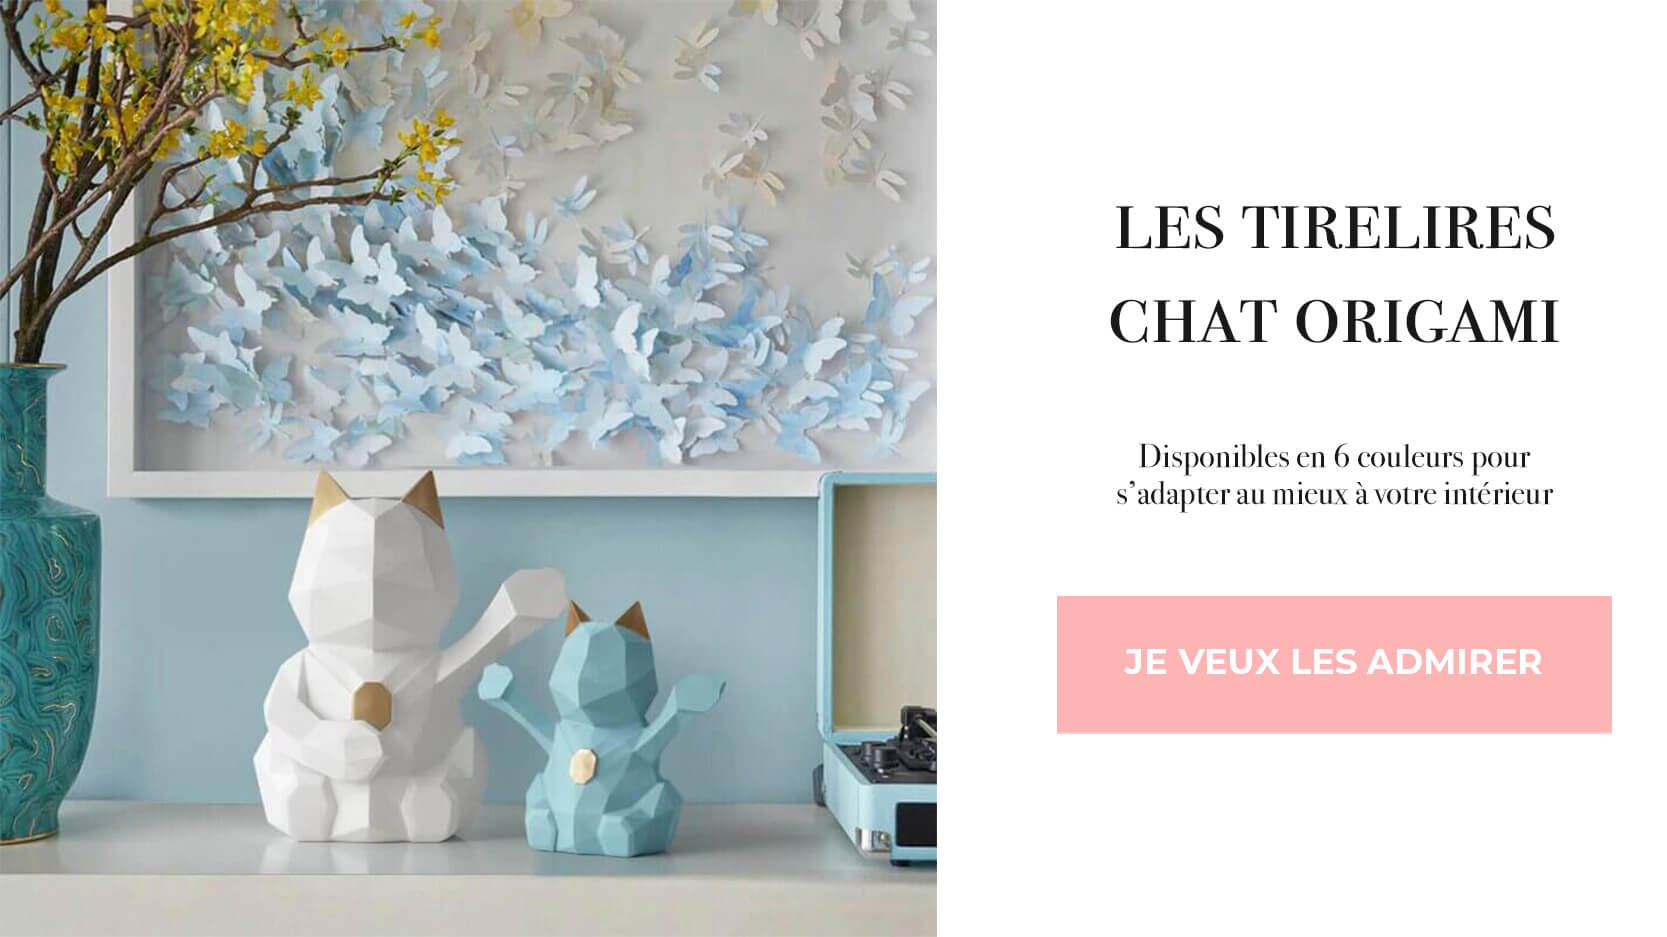 tirelires origami chat